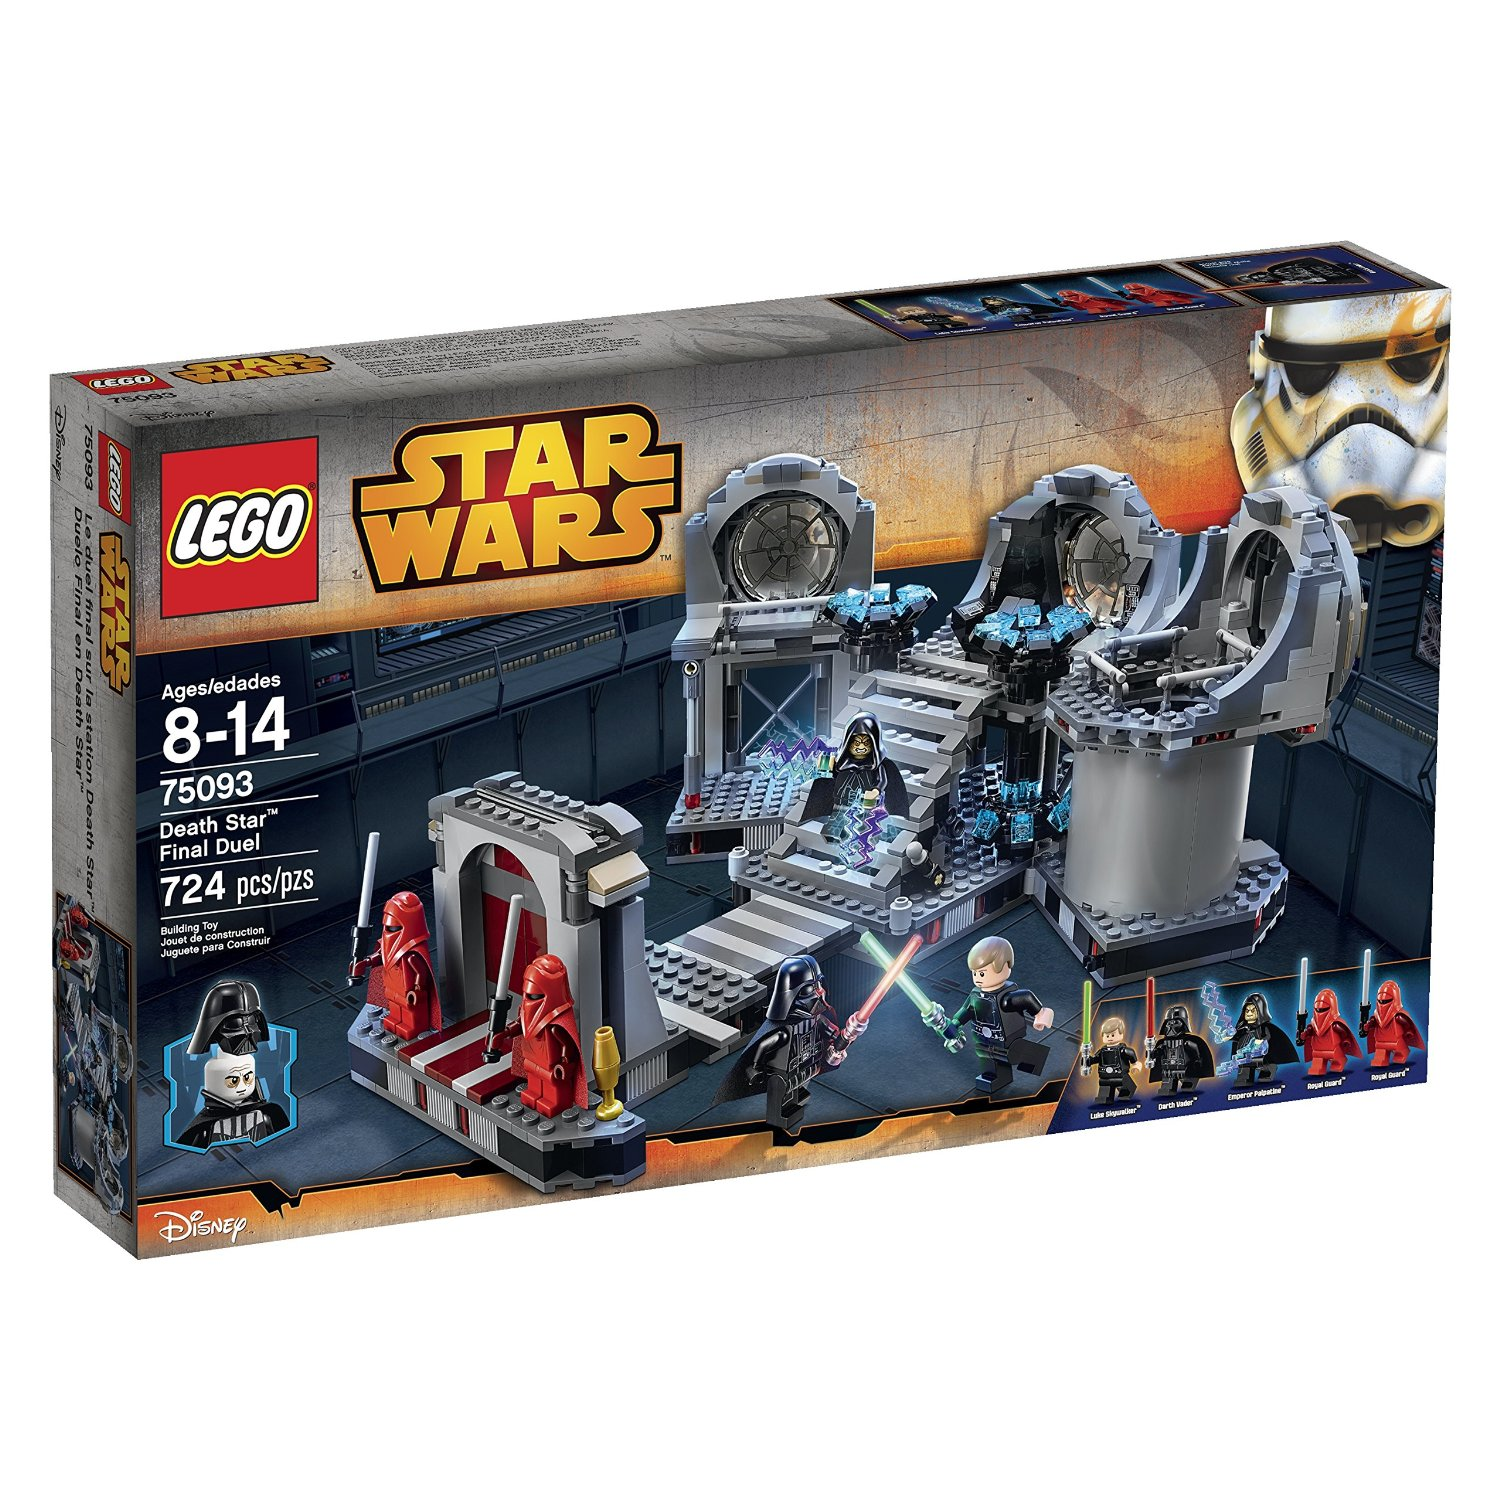 Star Wars Sets Lego 2019 Top Select Best For Ten vYIb76gmfy